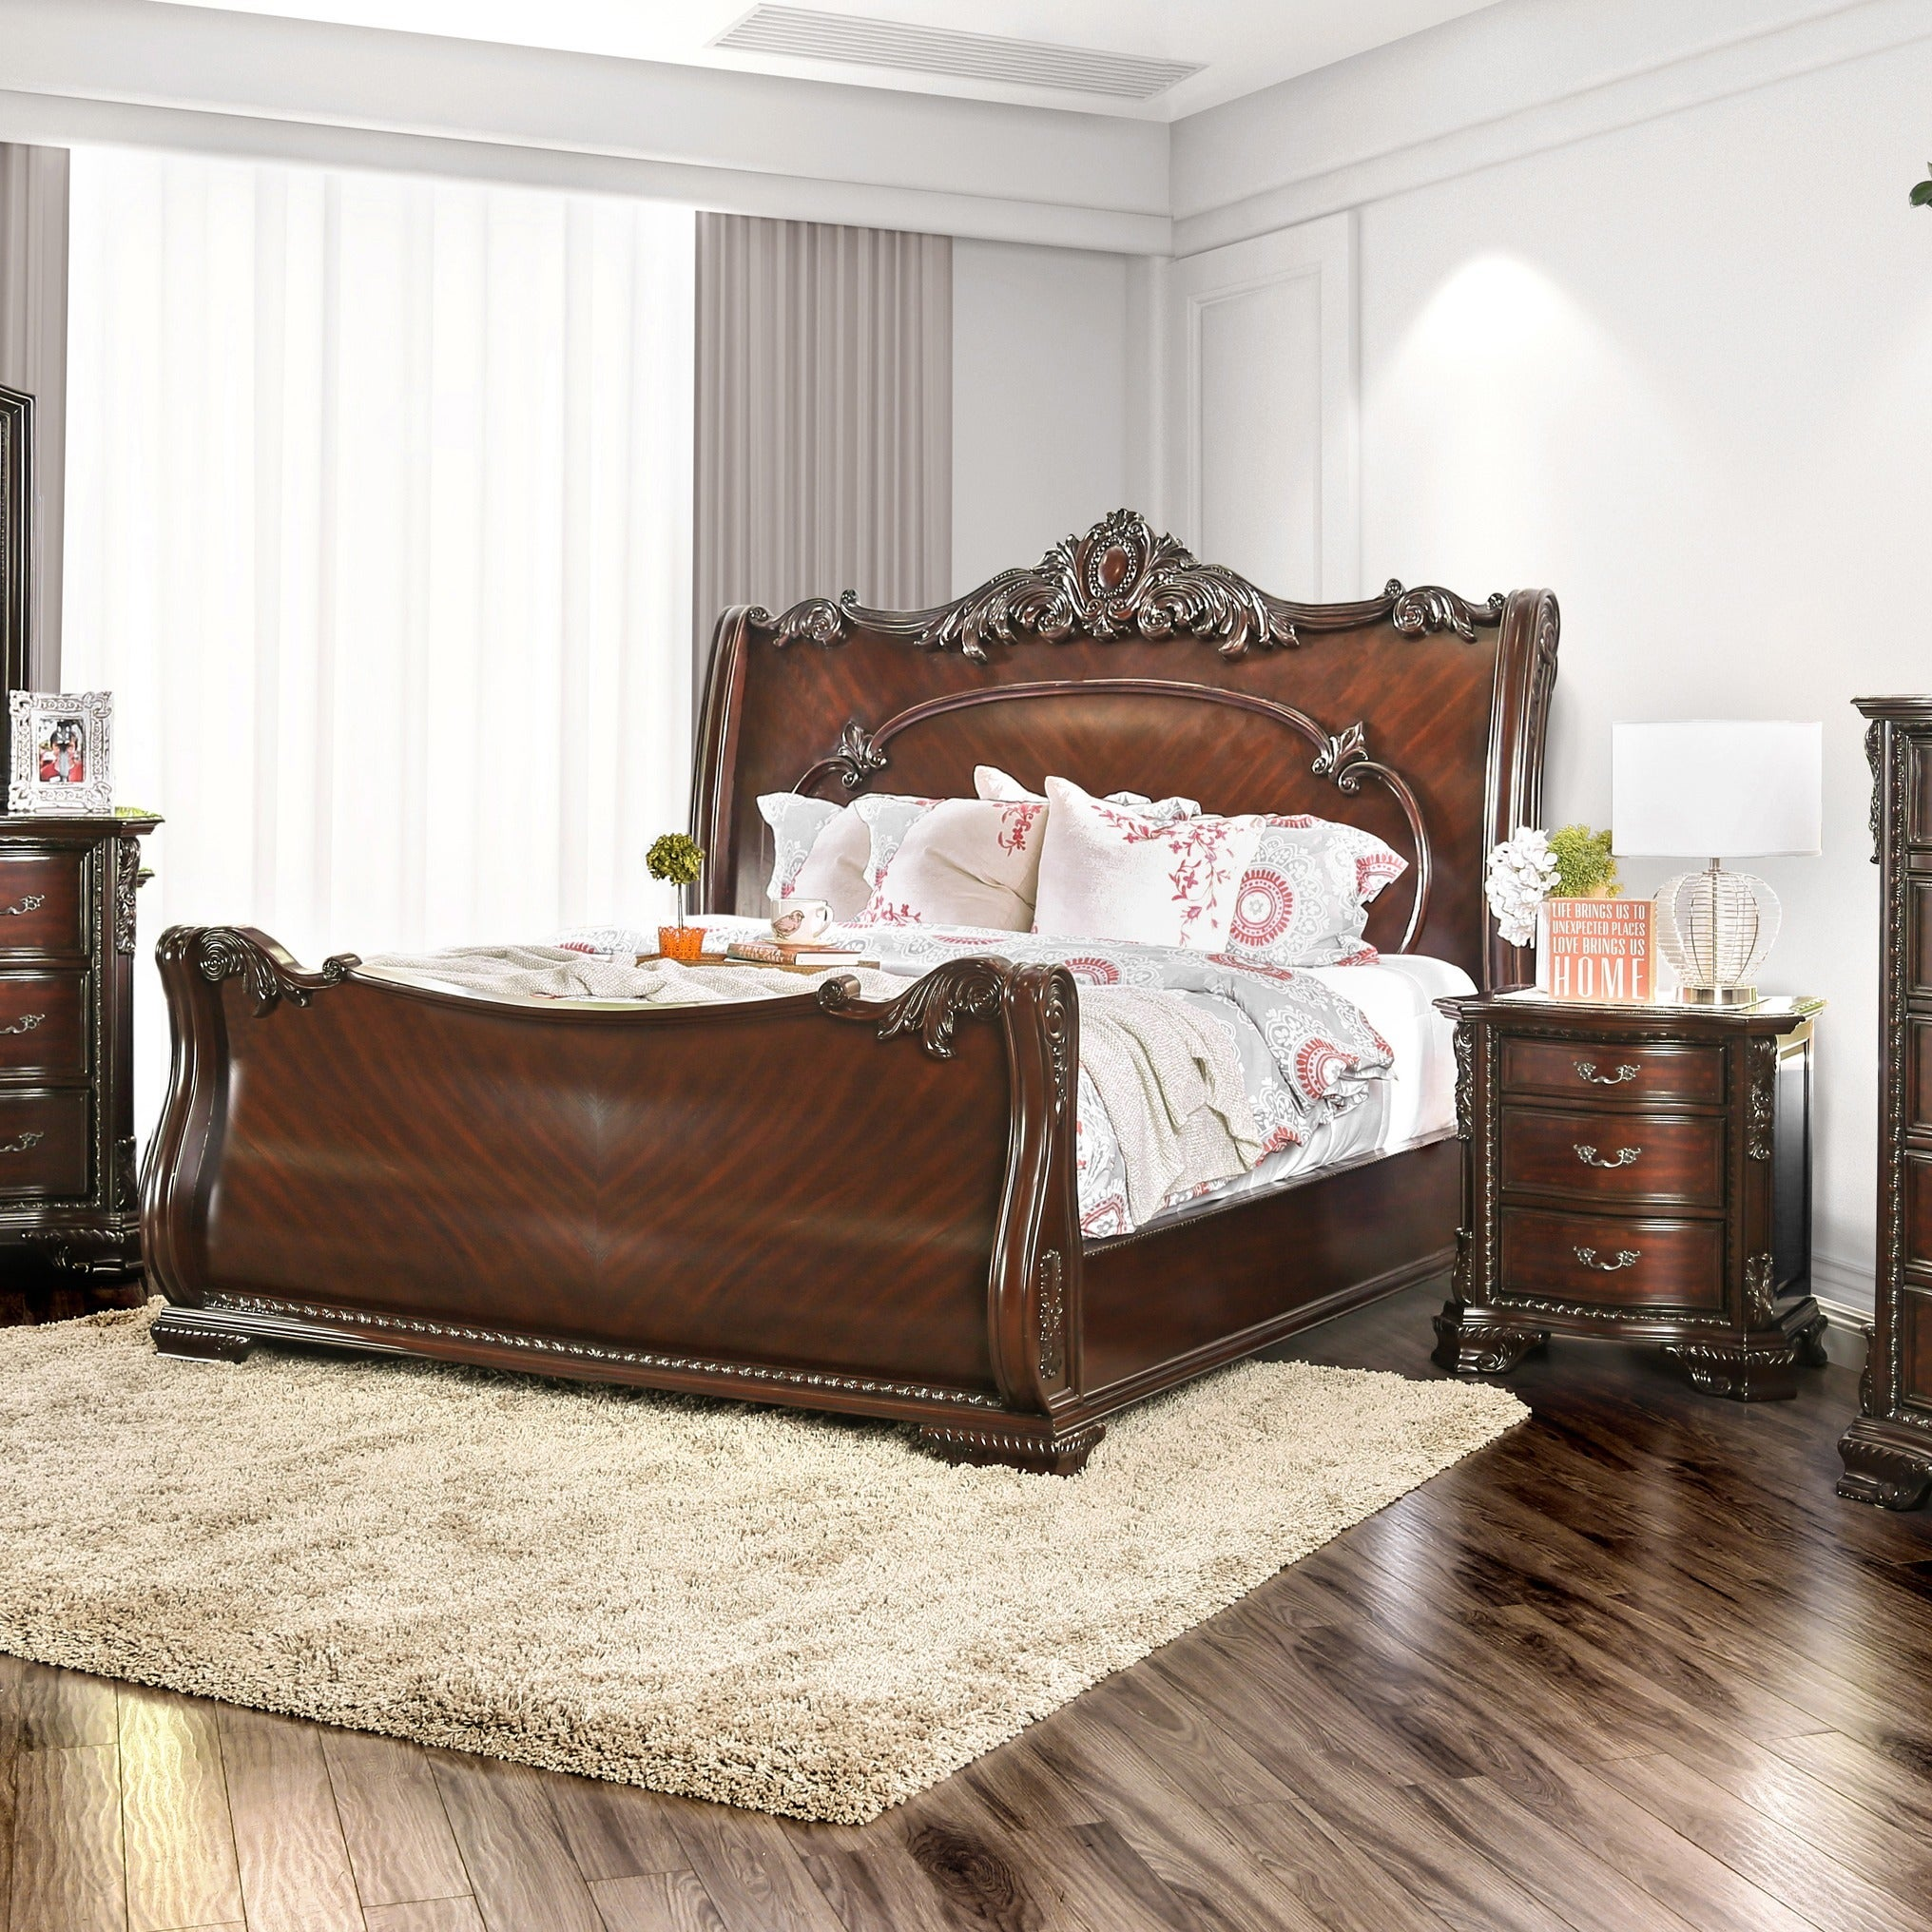 Furniture Bedroom Nightstands Brown